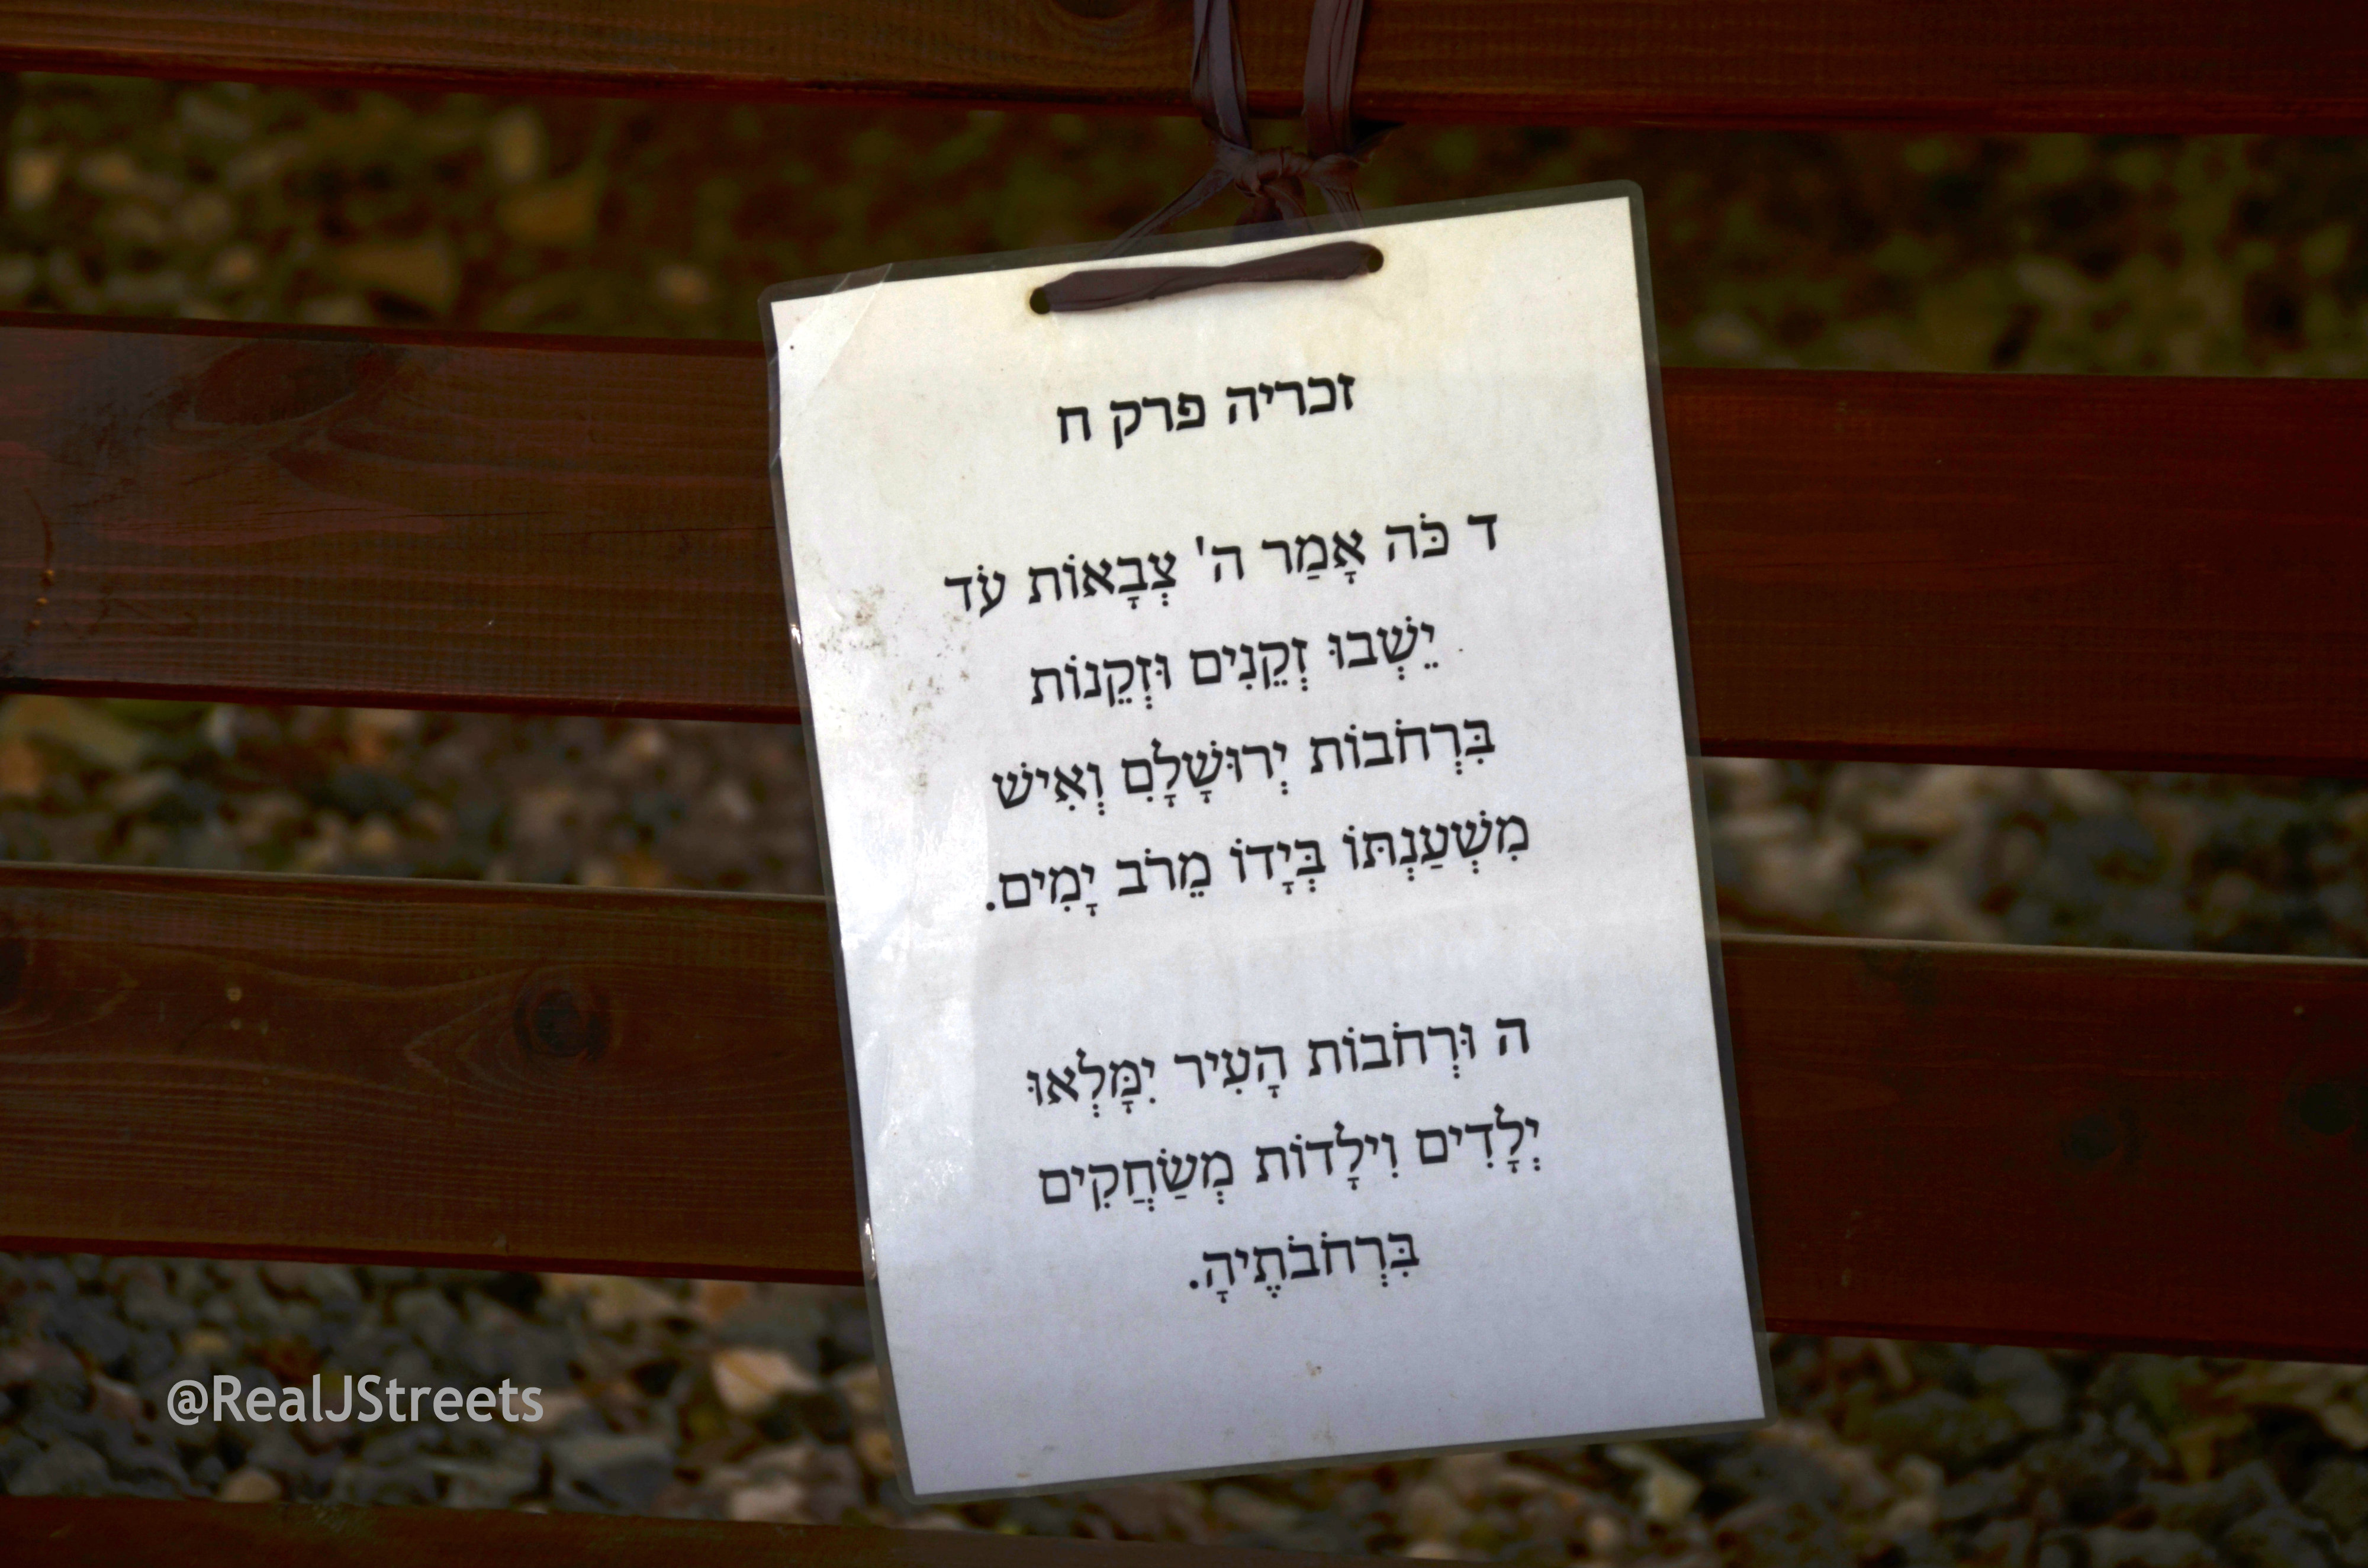 Verse in Hebrew about children playing on the streets of Jerusalem